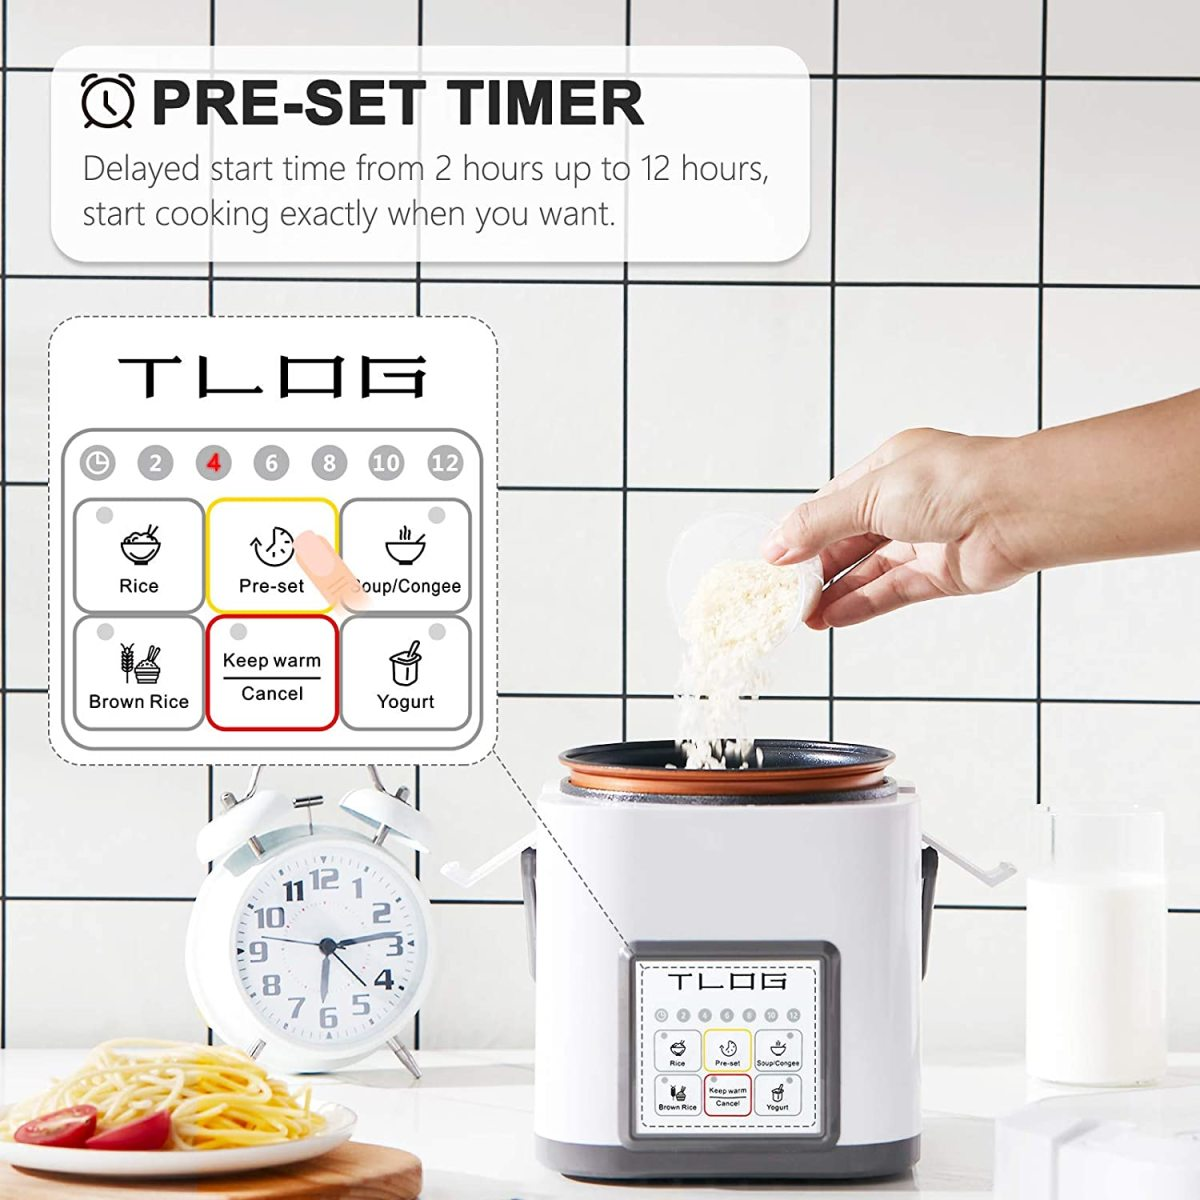 Before Buying a TLOG Mini Rice Cooker, Here's What You Need to Know